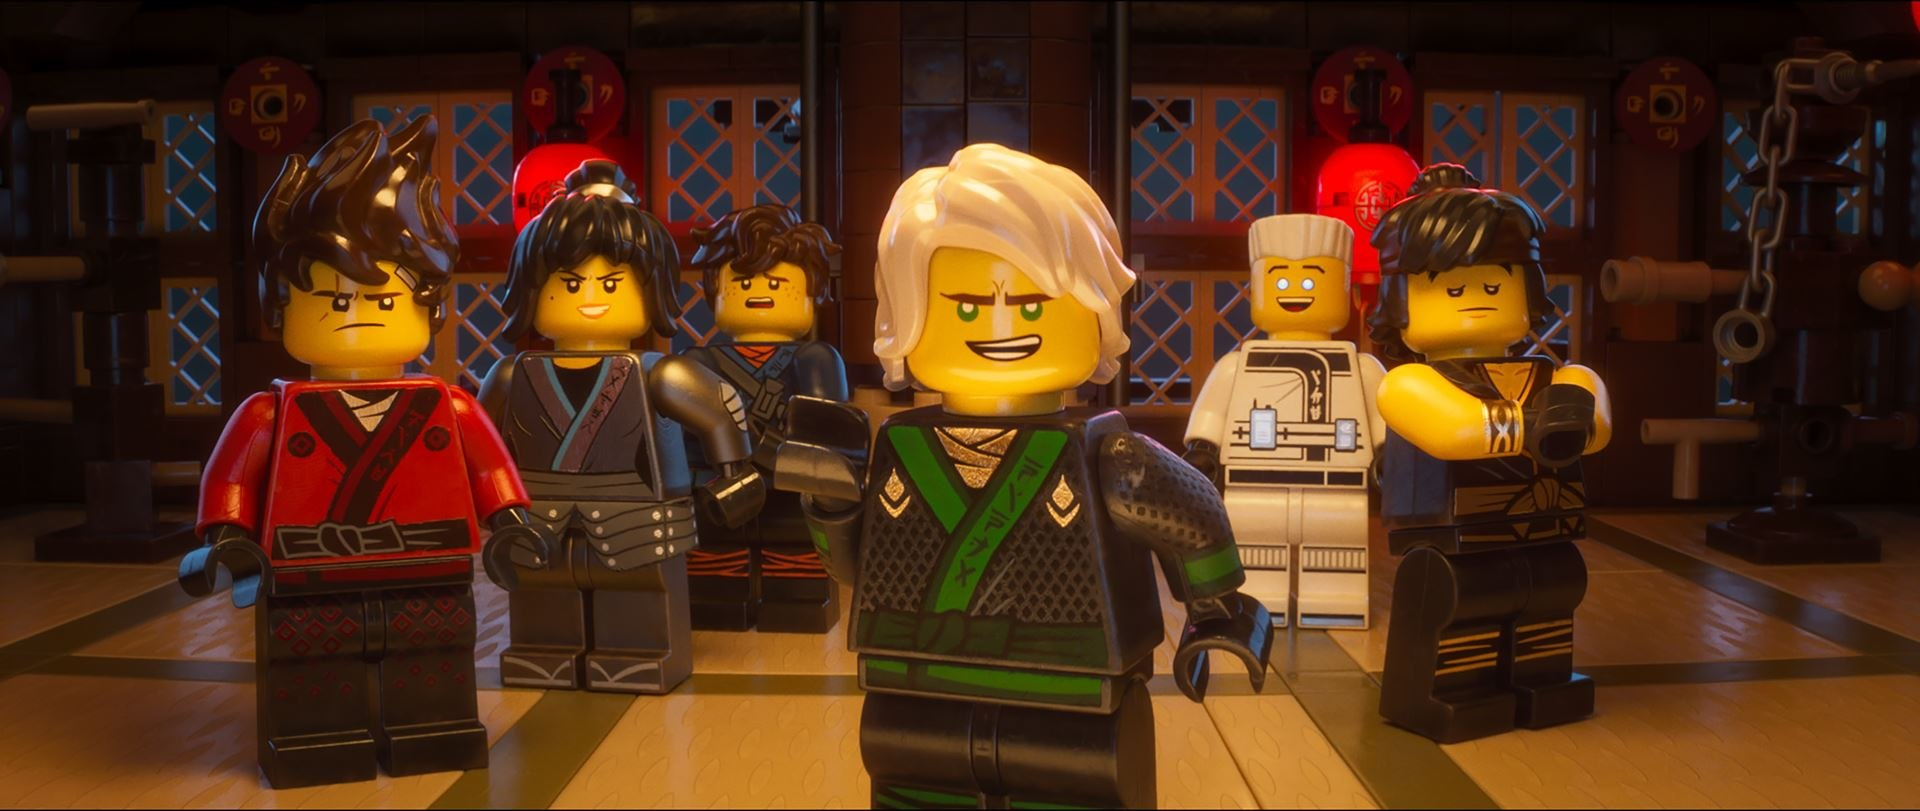 Zooming in to the Scale of  LEGO Ninjago    Animation World Network third installment in the LEGO franchise  The LEGO Ninjago Movie  directed  by Charlie Bean  Paul Fisher and Bob Logan  delivers a new perspective on  the LEGO